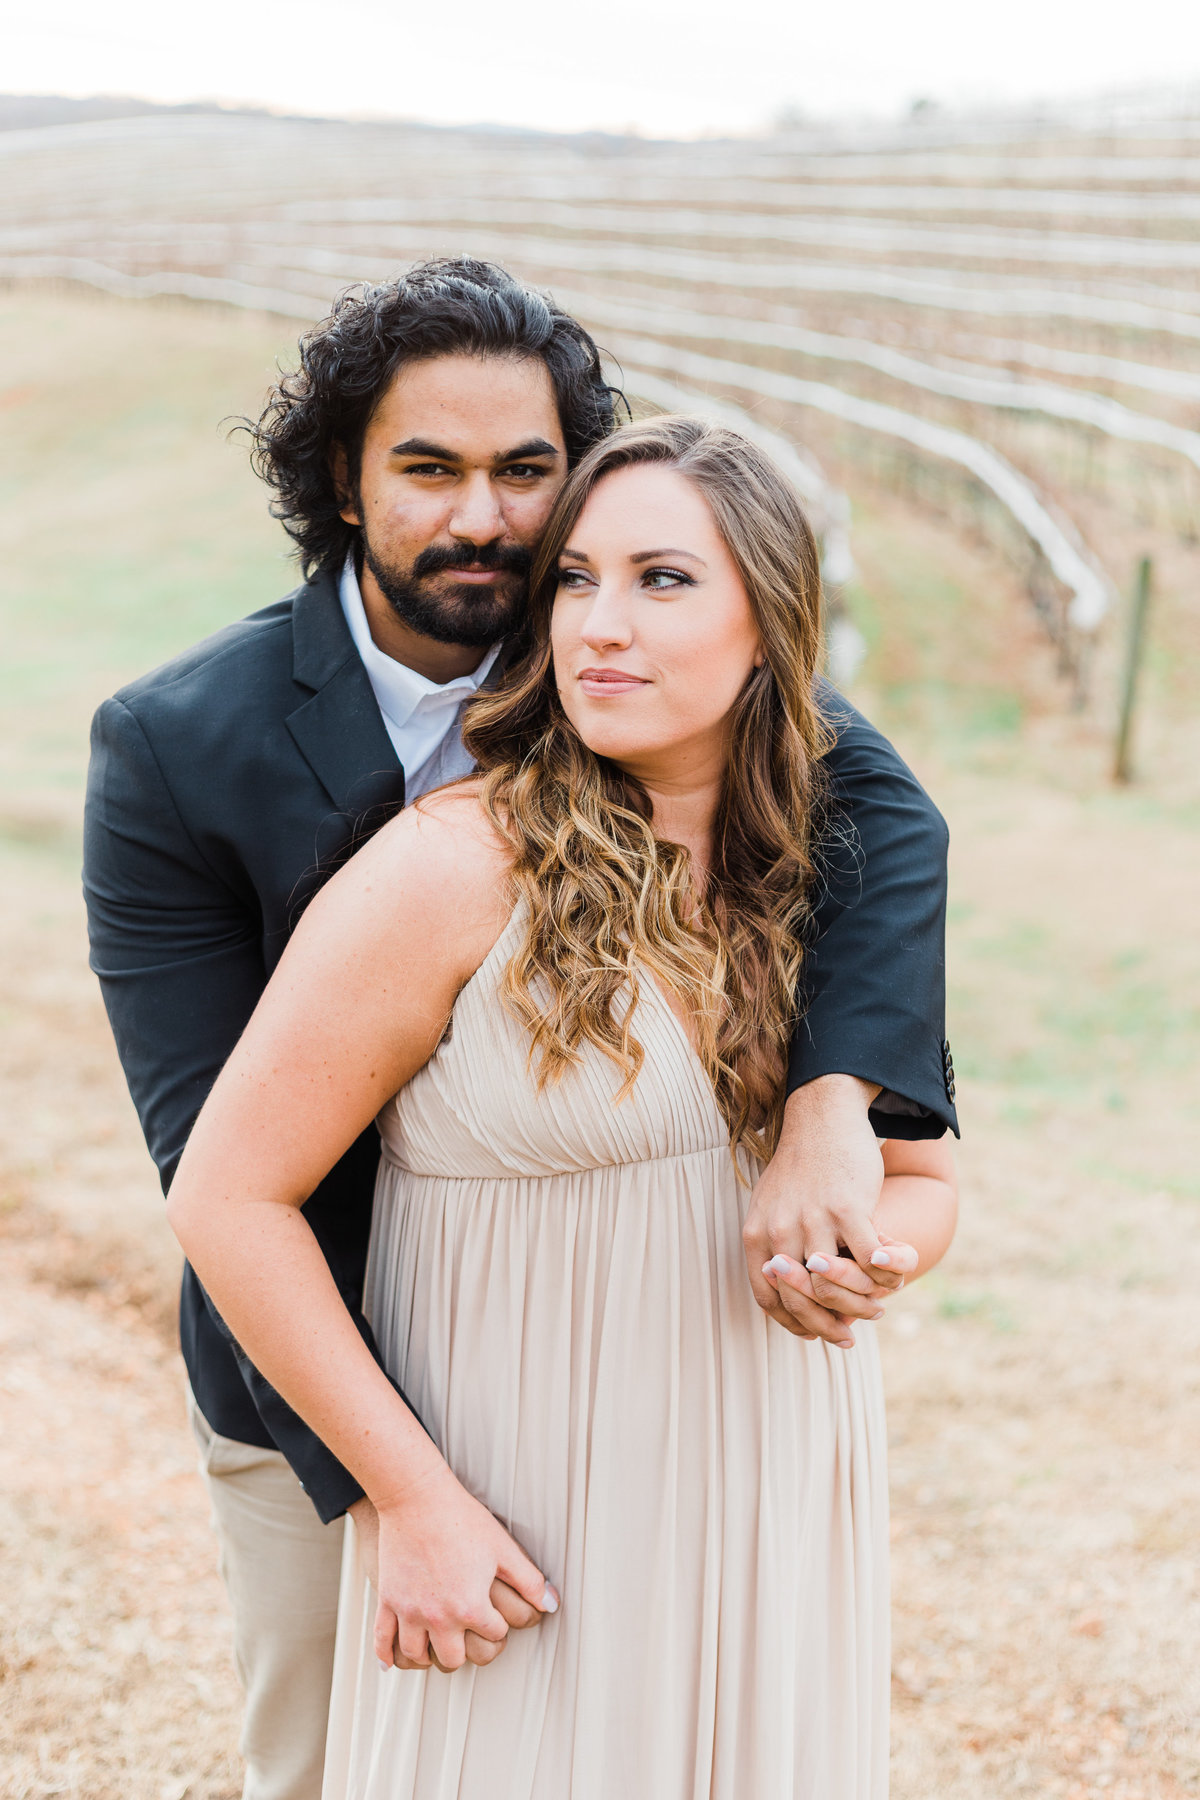 Motaluce Winery, Gainesville, GA Couple Engagement Anniversary Photography Session by Renee Jael-16